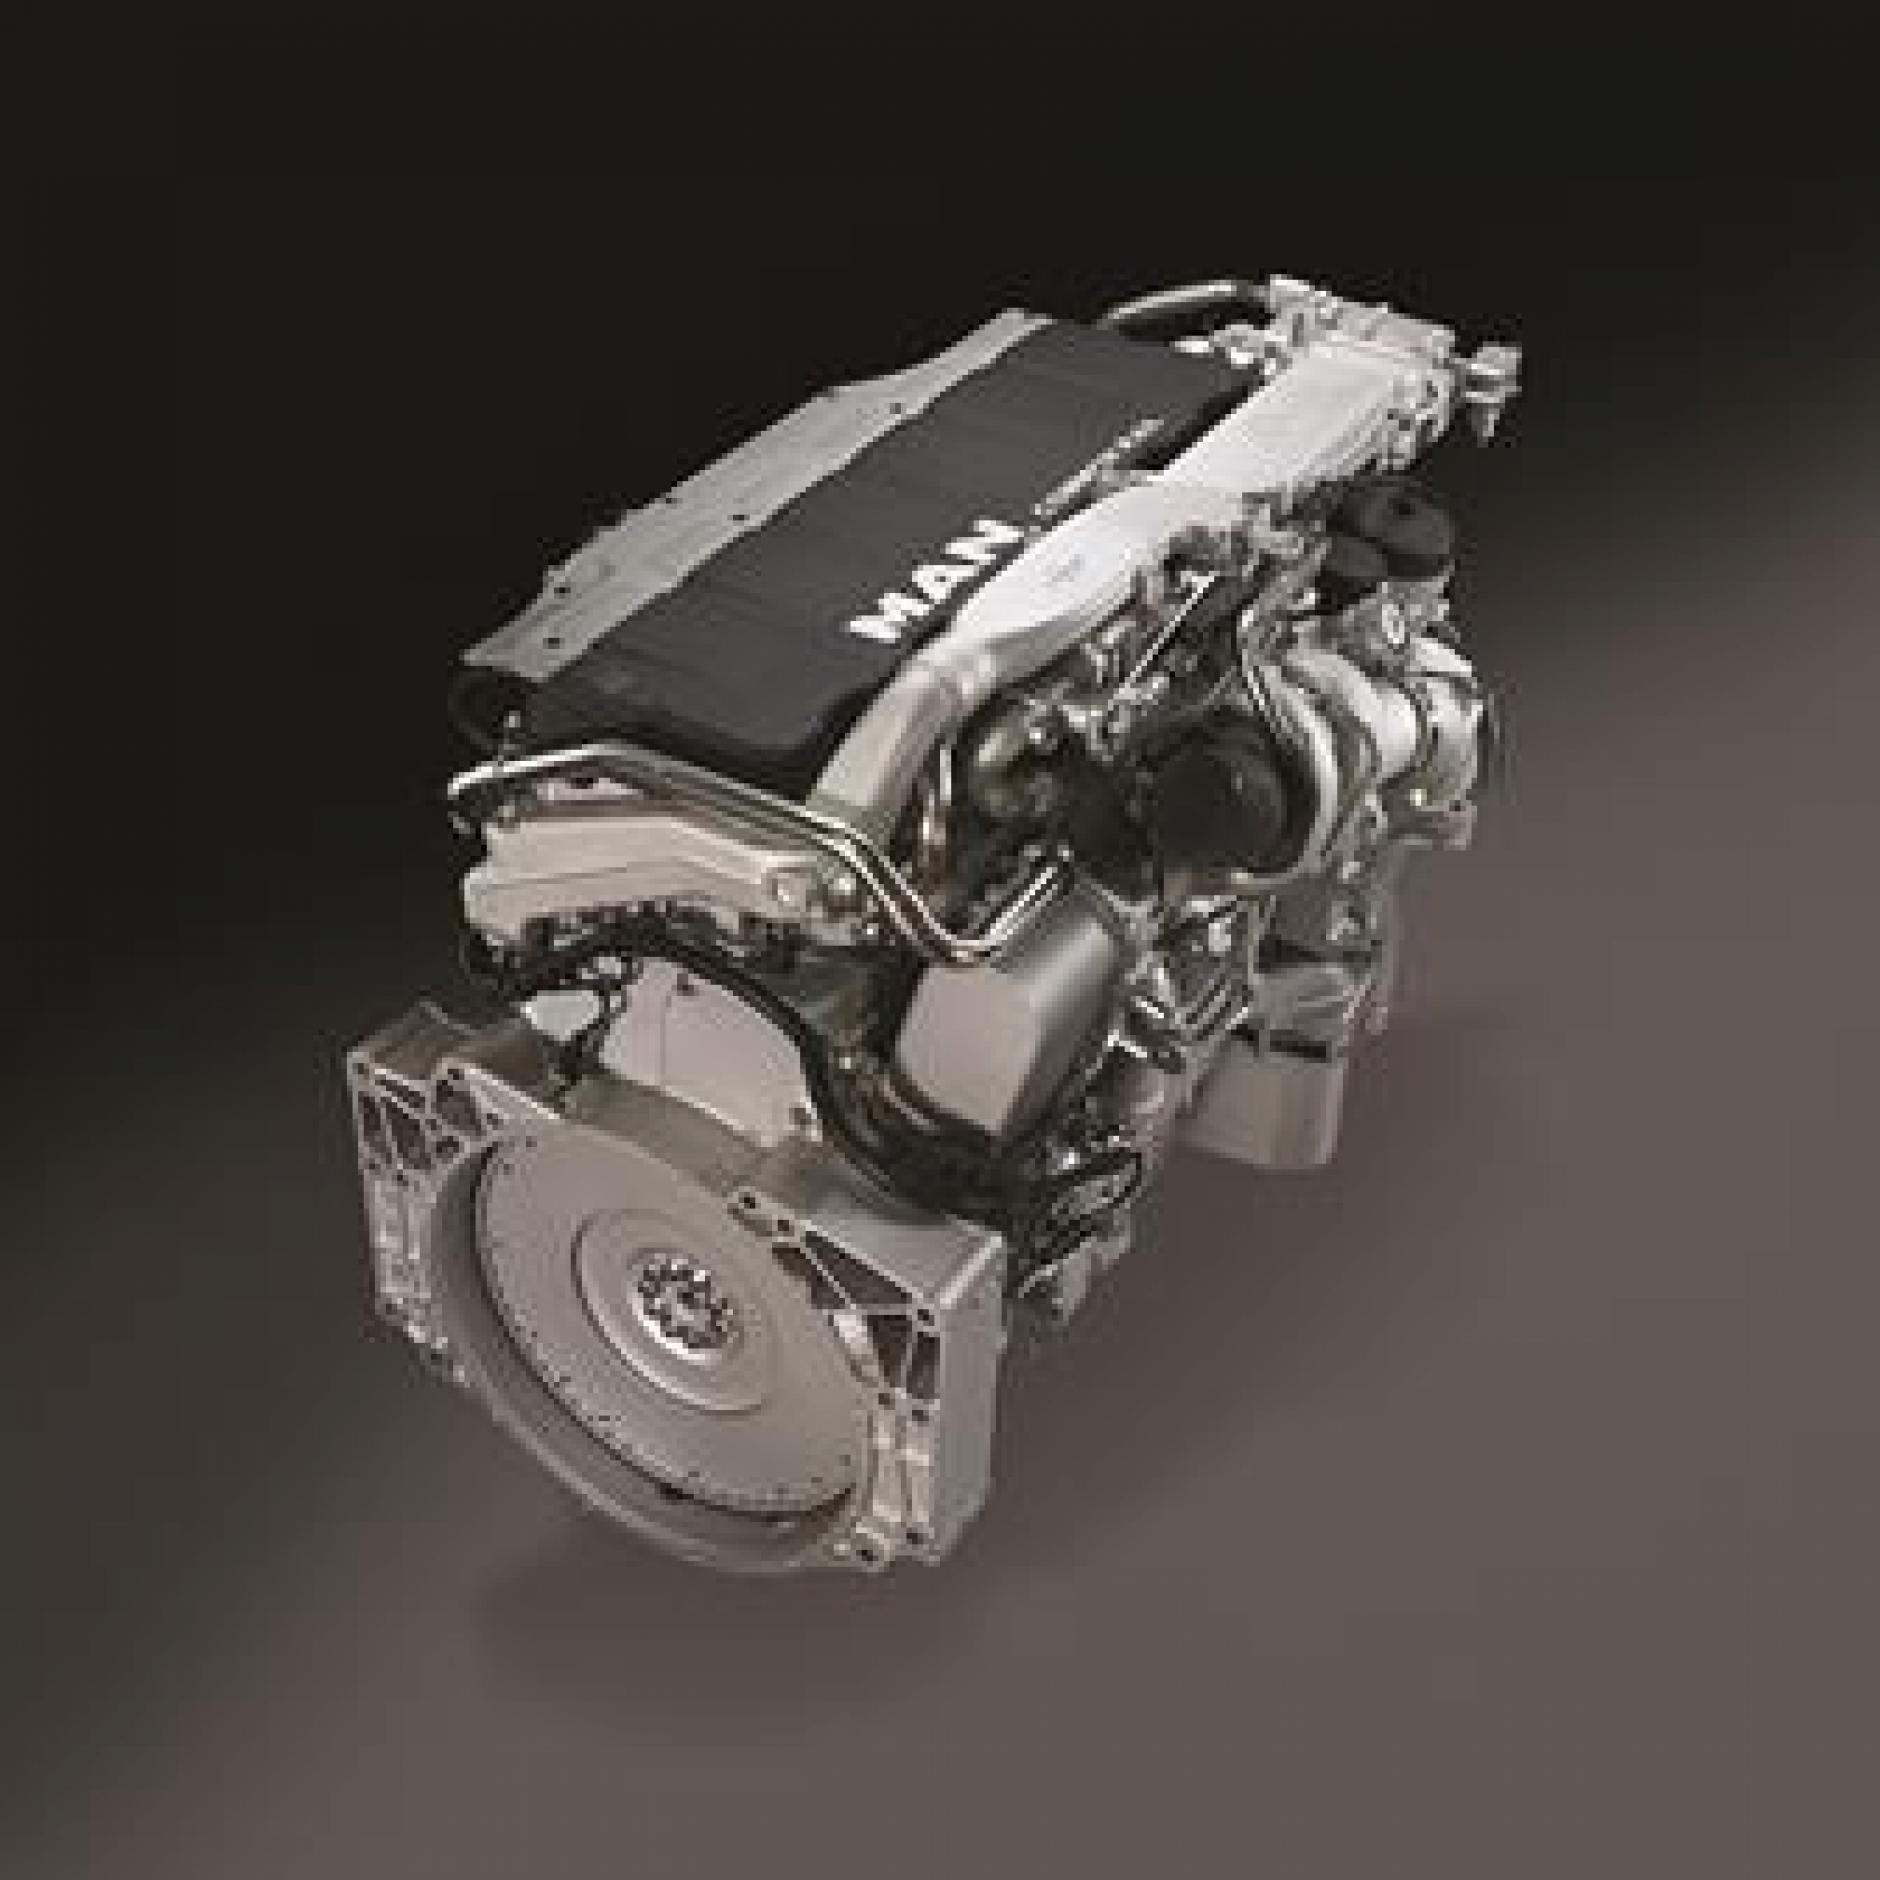 MAN admits to fixing 300 faulty Euro-5 D26 engines